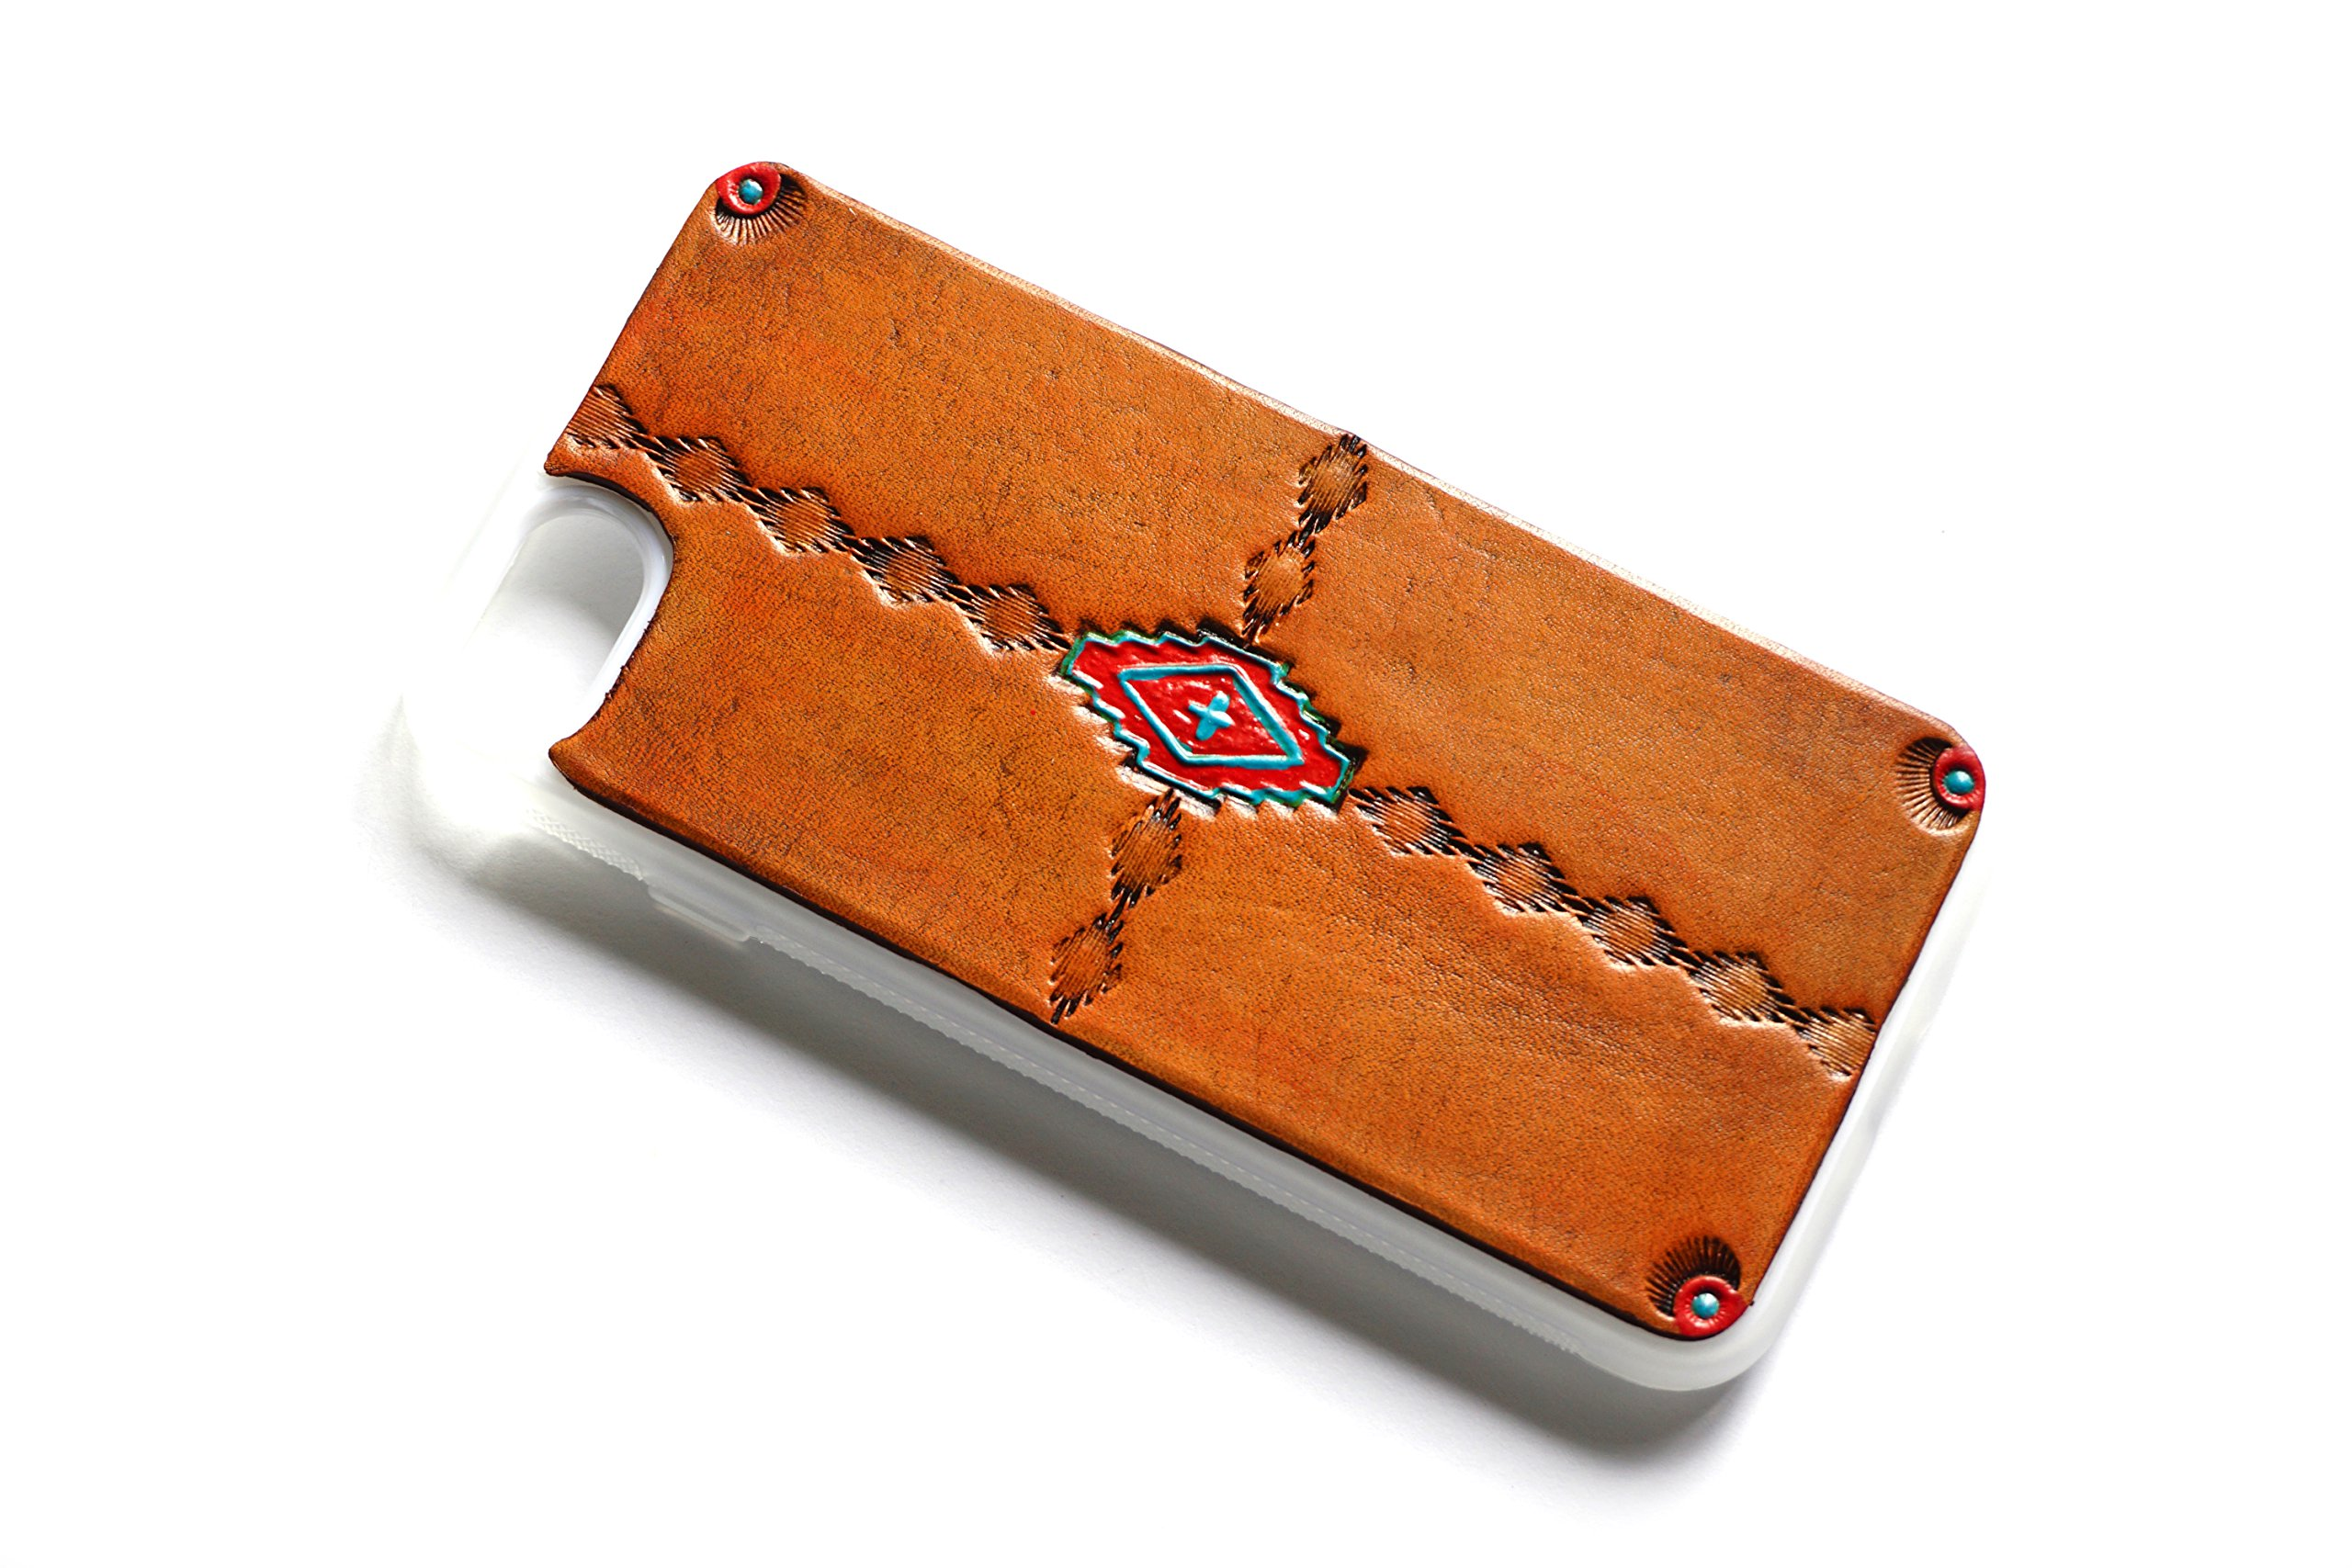 Leather iPhone 8 Plus Case Southwestern | The Lodgepole Case | Tan Handmade 5.5'' Hard Back Slim Fit Silicone Edges Protective Cowhide Leather iPhone Case by Lodgepole Leathercraft